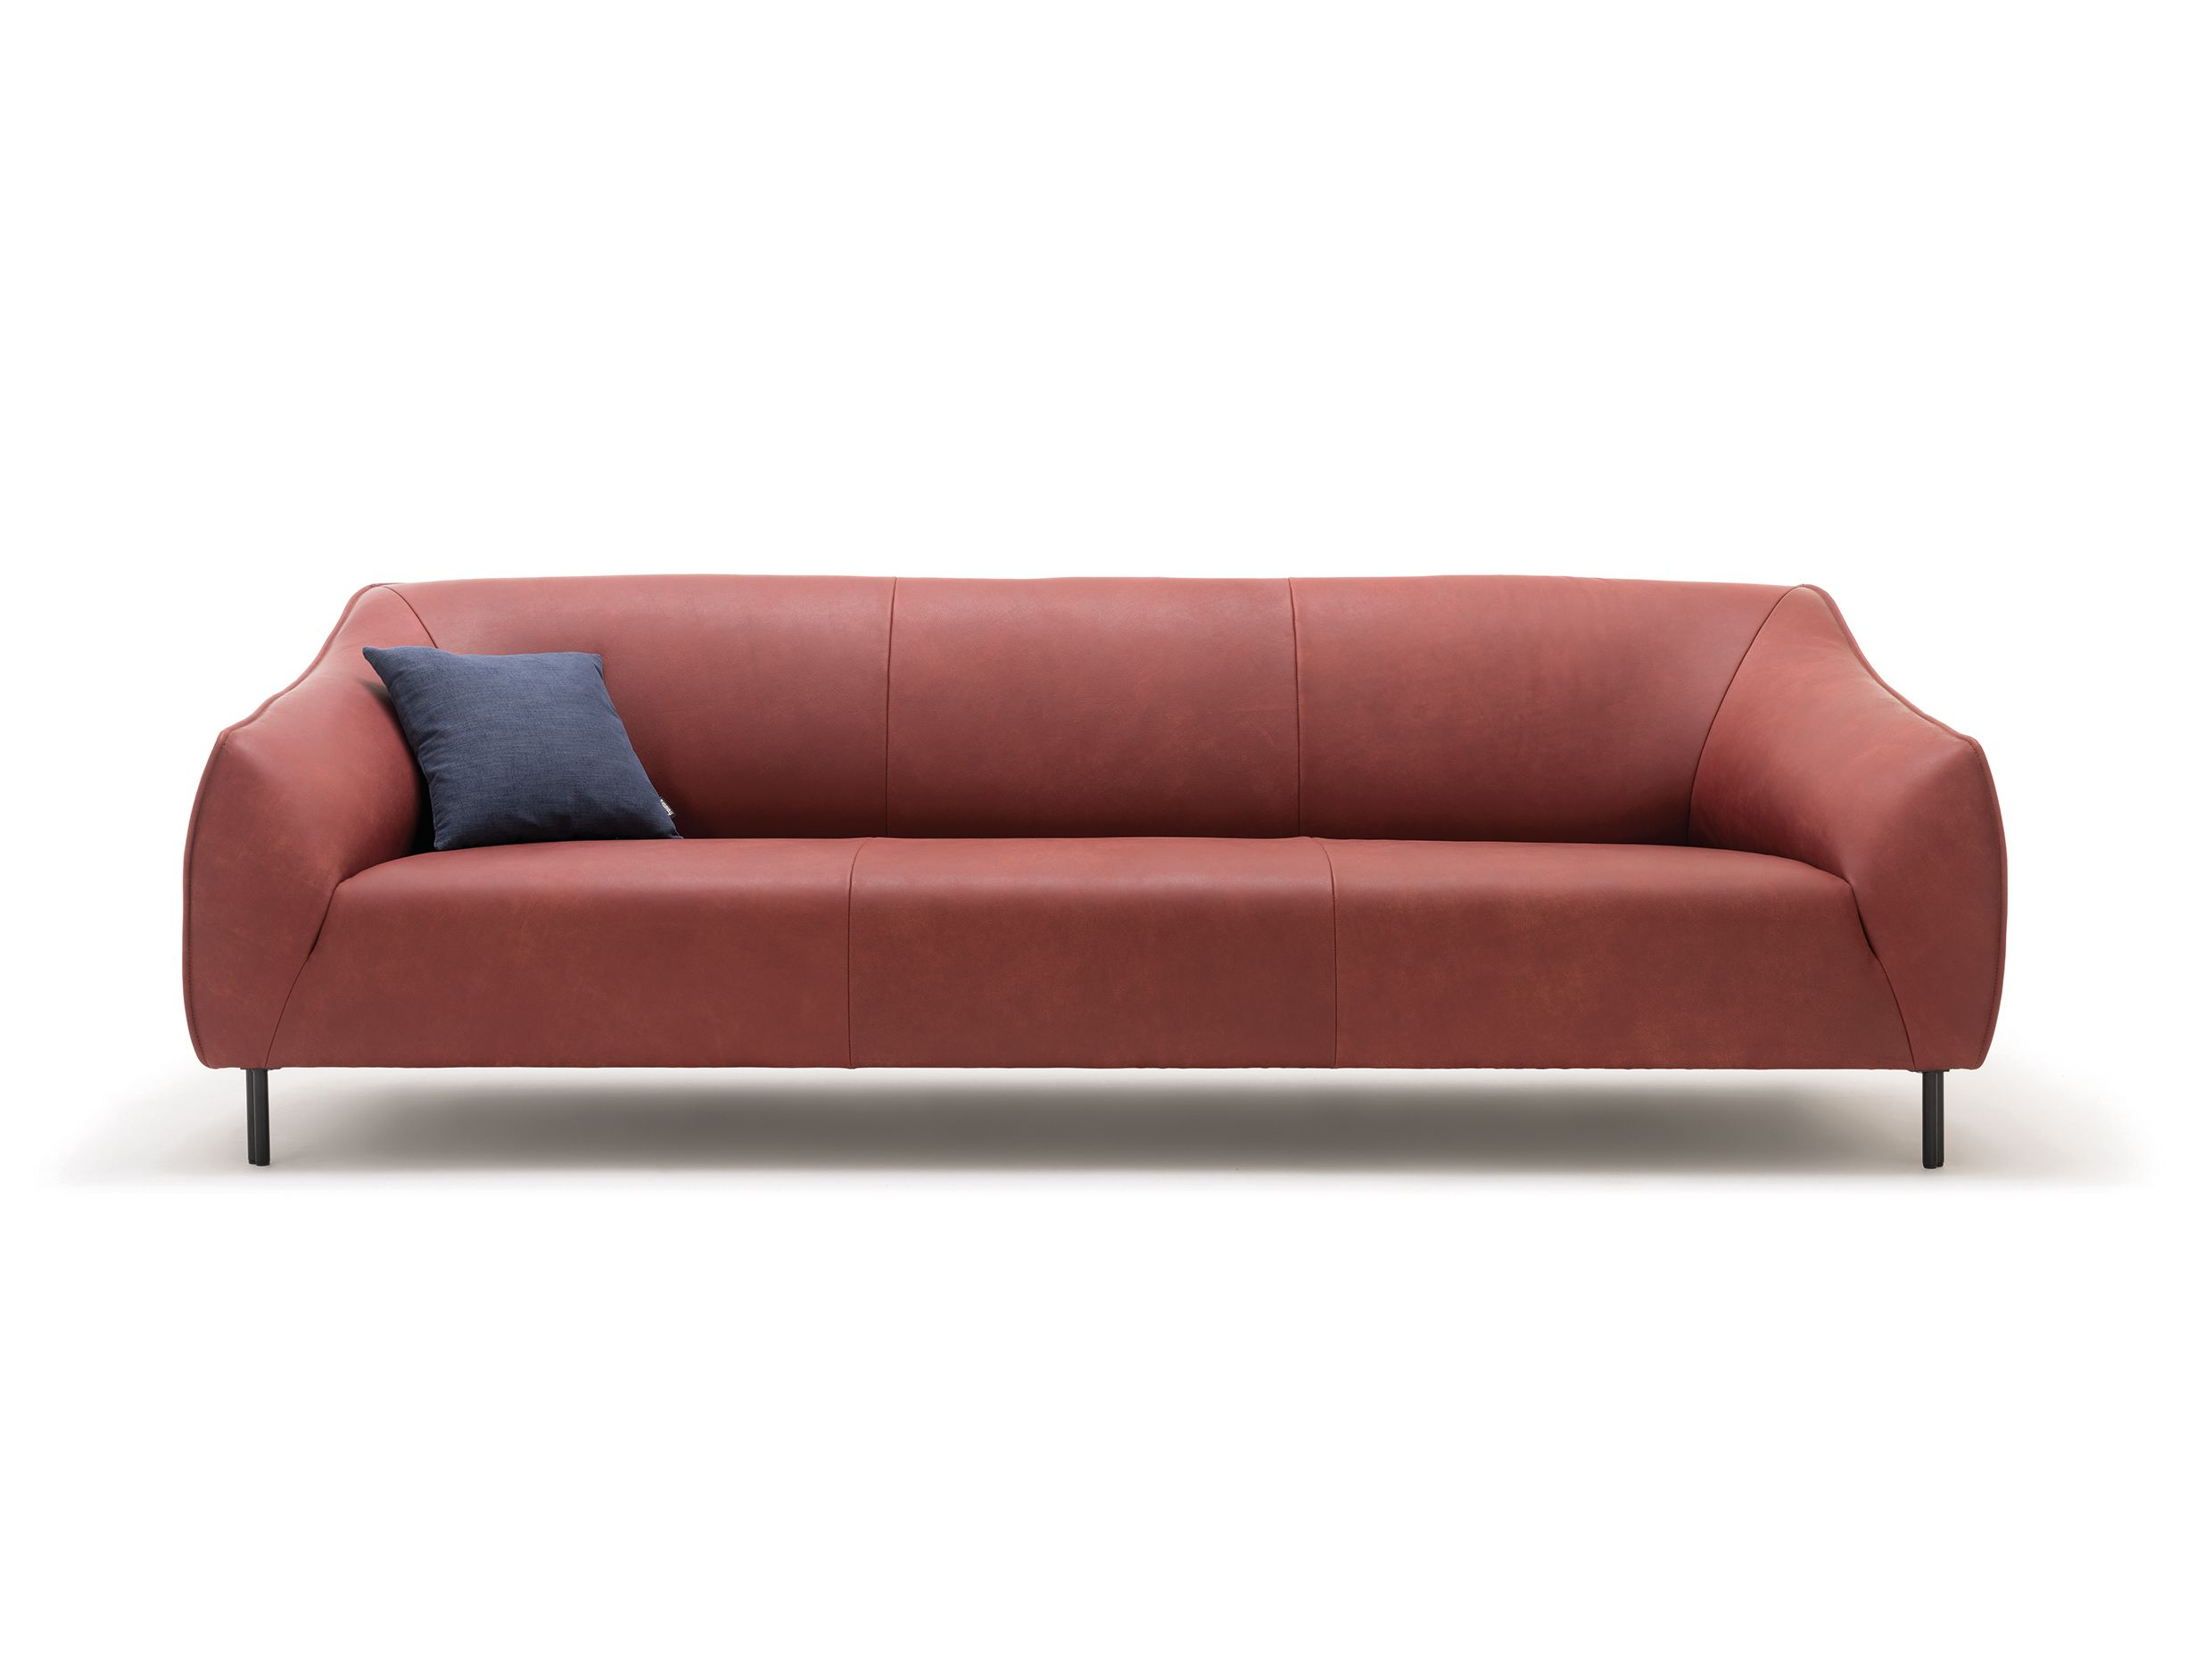 Freistil 132 Sofa Available At Studio Anise Rolf Benz U S Flagship Store Freistil Rolfbenz Studioanise De Soft Furniture Sofa Design Contemporary Sofa